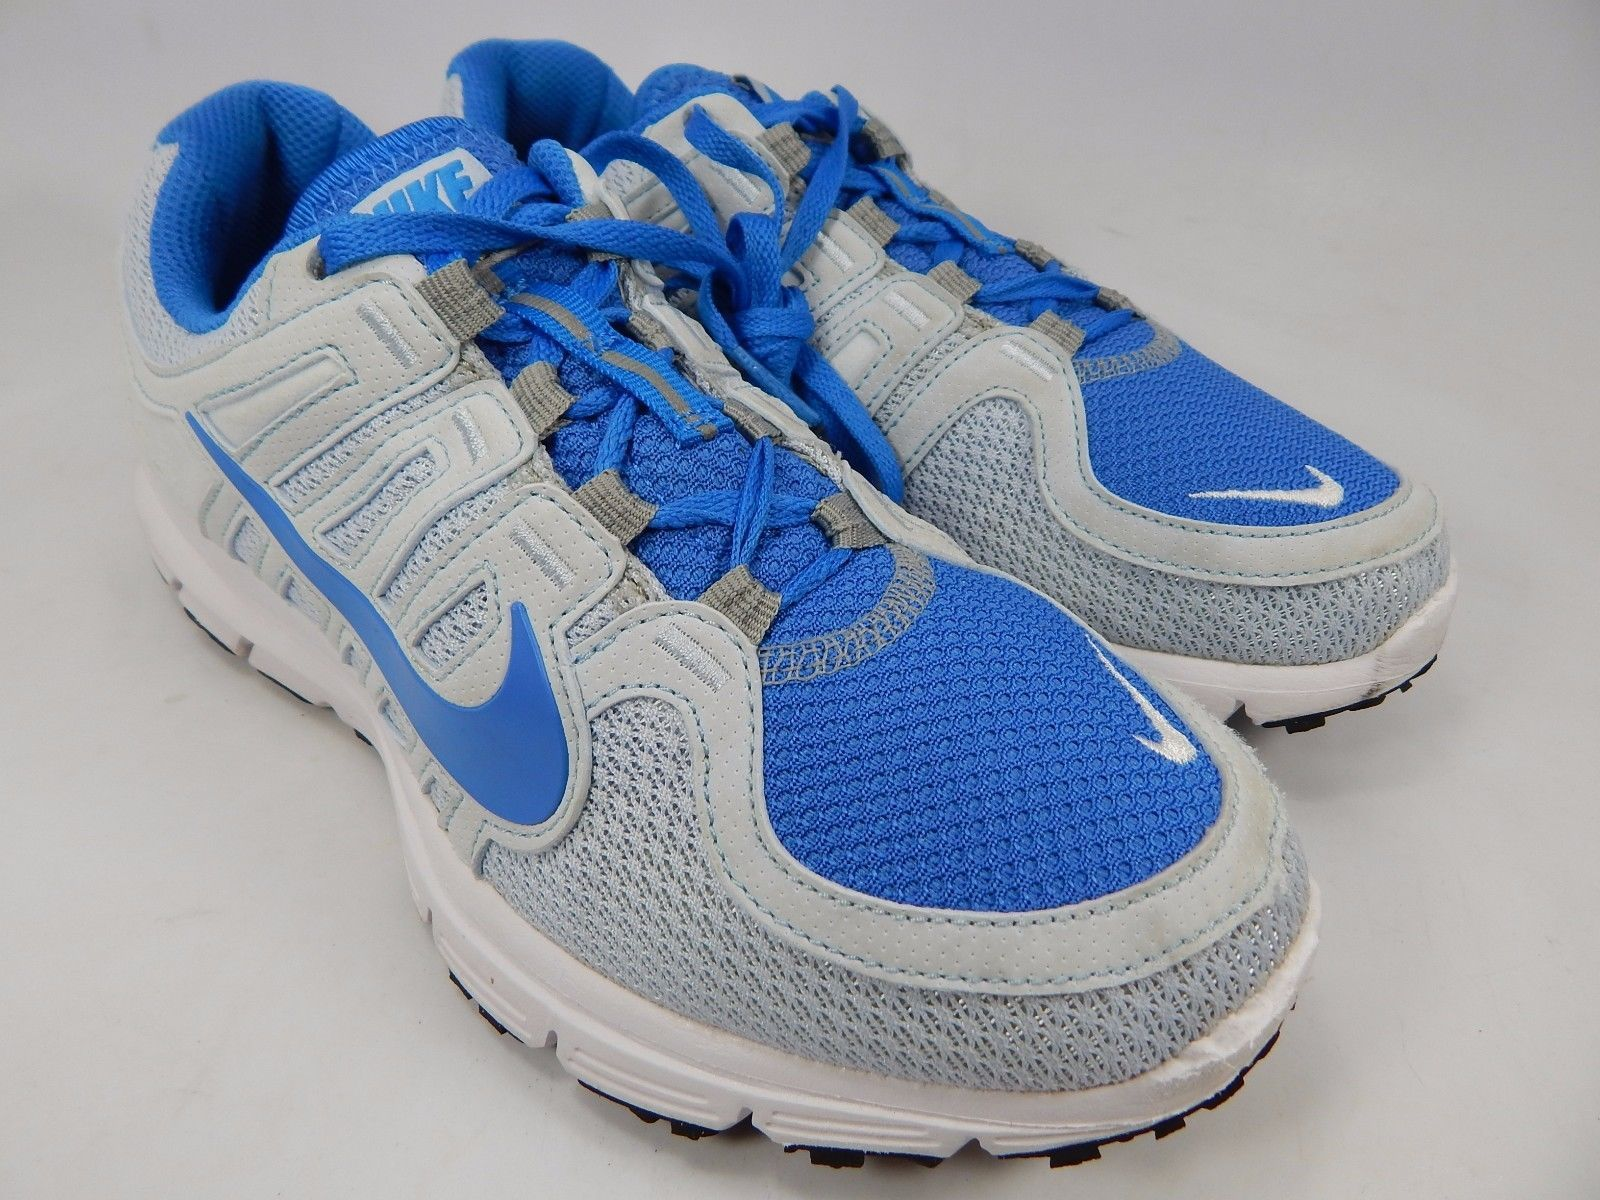 Nike Run Avant+ Women's Running Shoes Size US 7 M (B) EU 38 Blue 366157-404